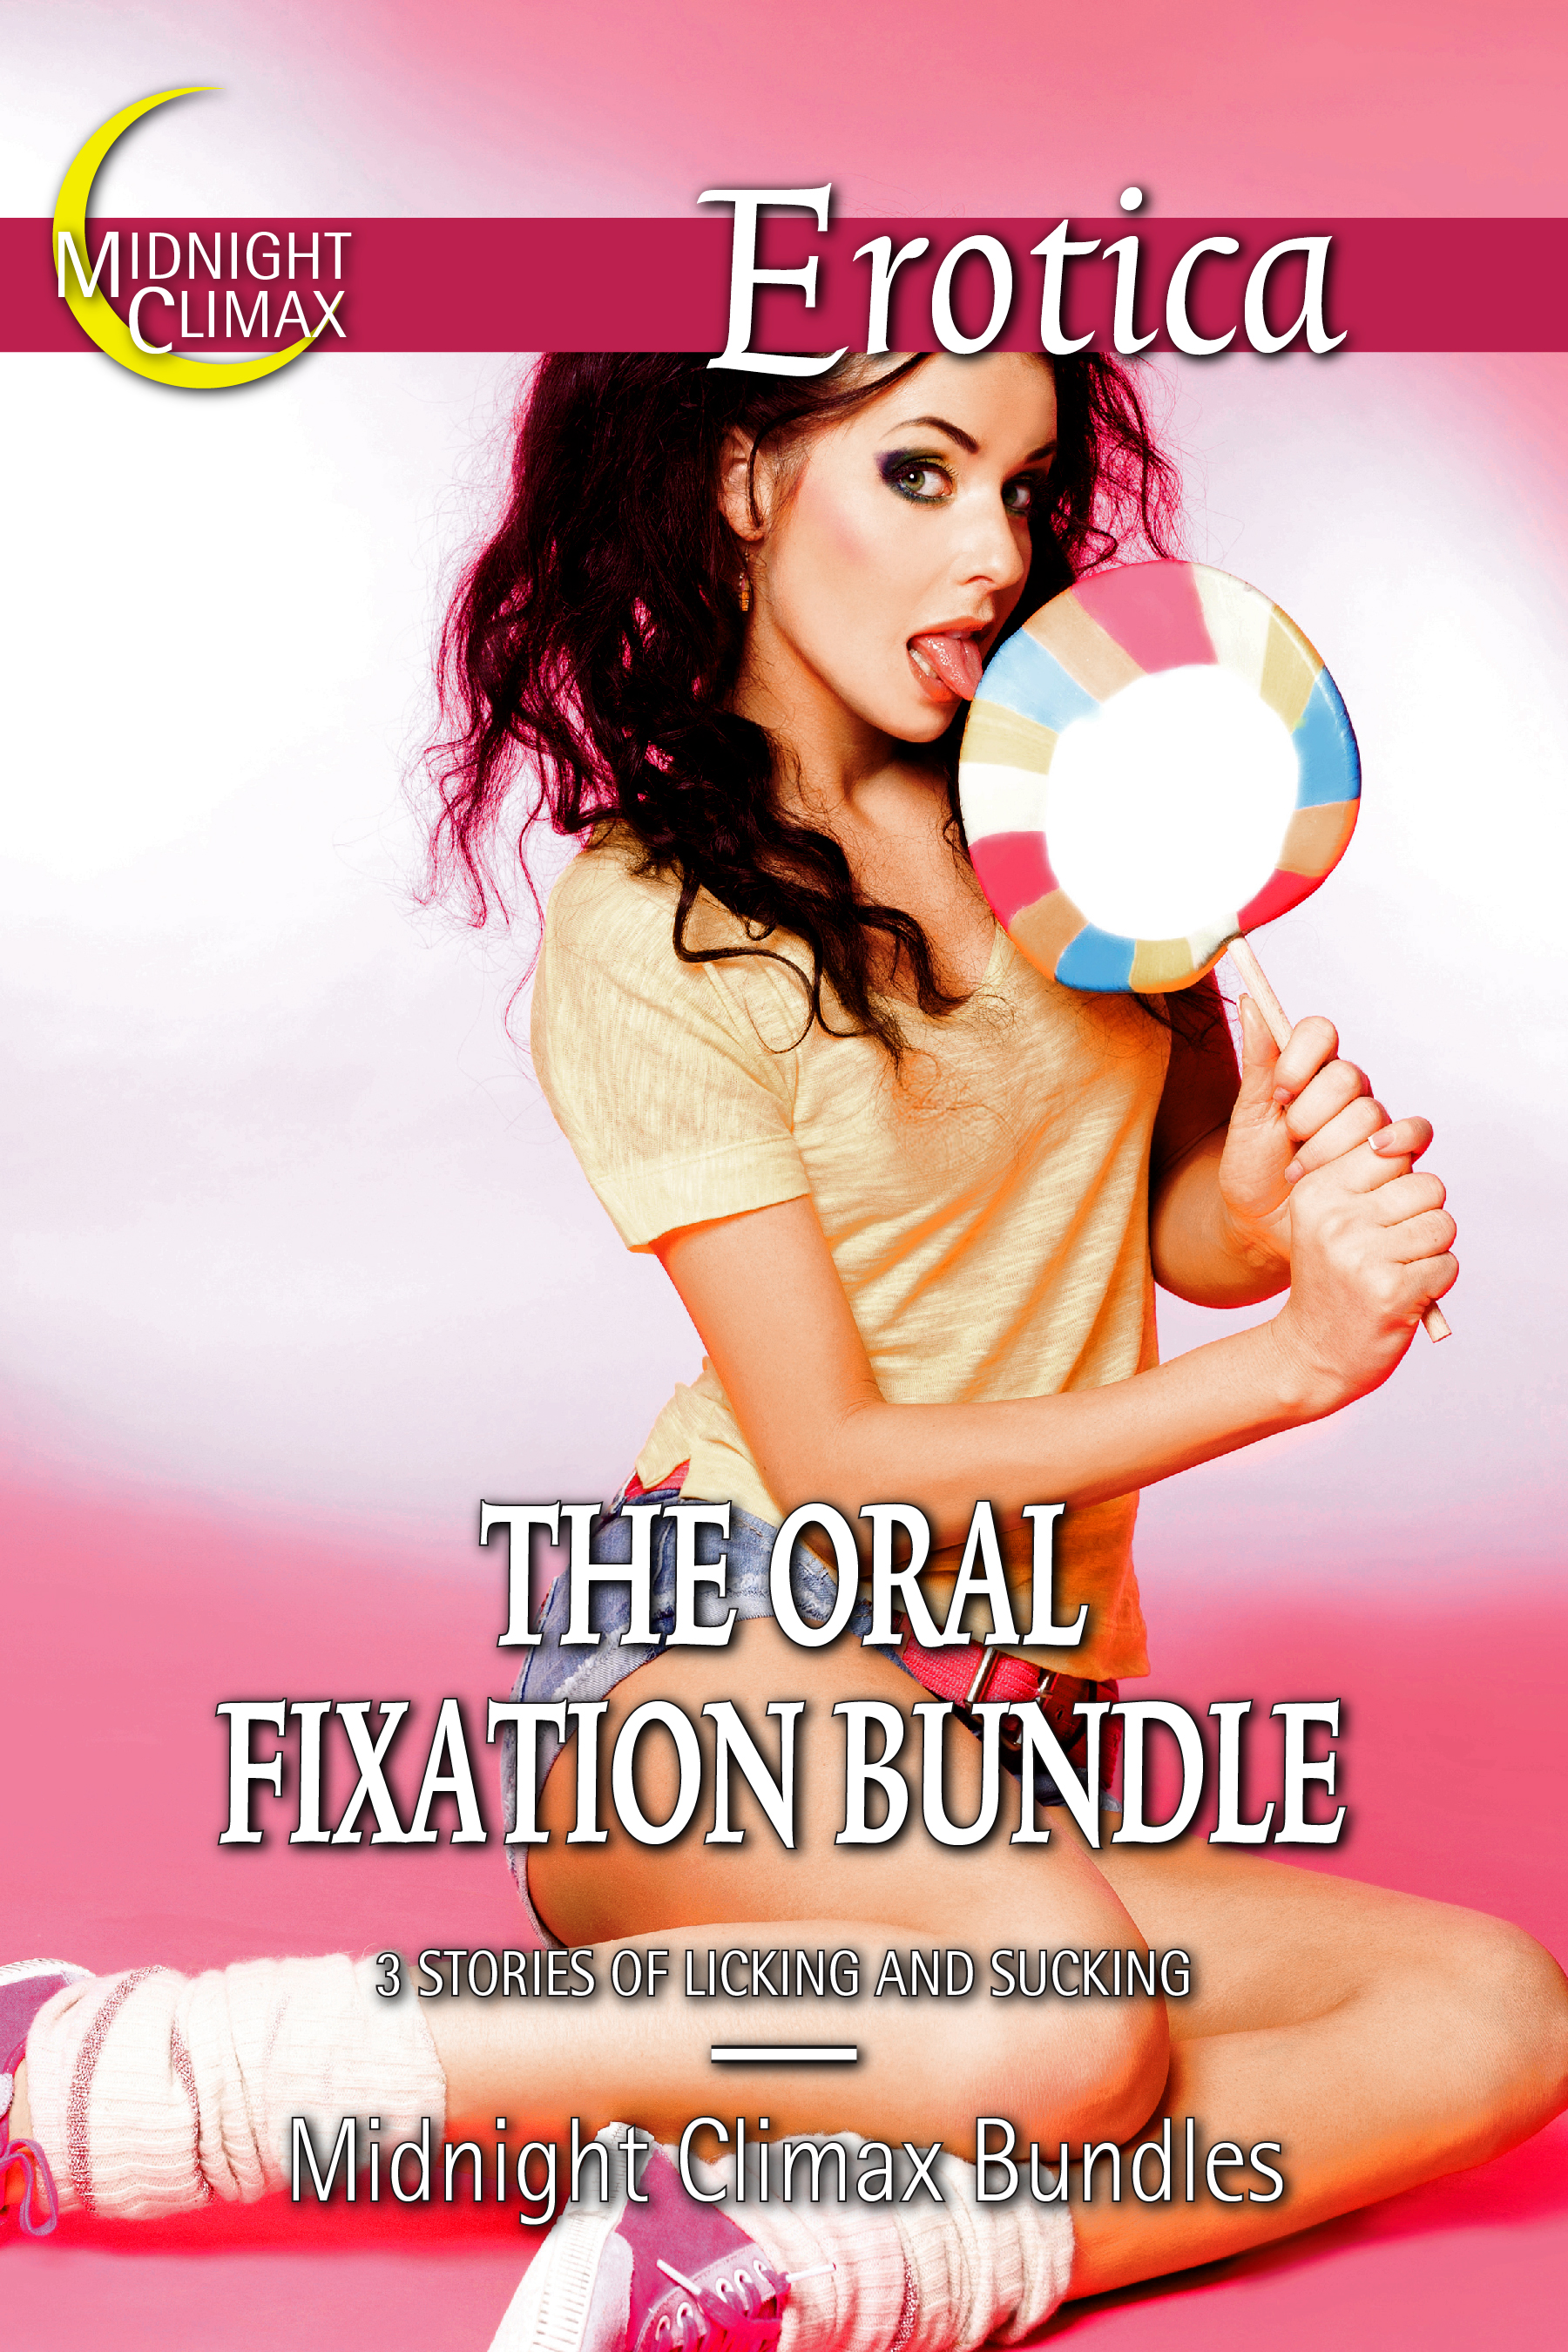 Midnight Climax Bundles - The Oral Fixation Bundle (3 Stories of Licking and Sucking)